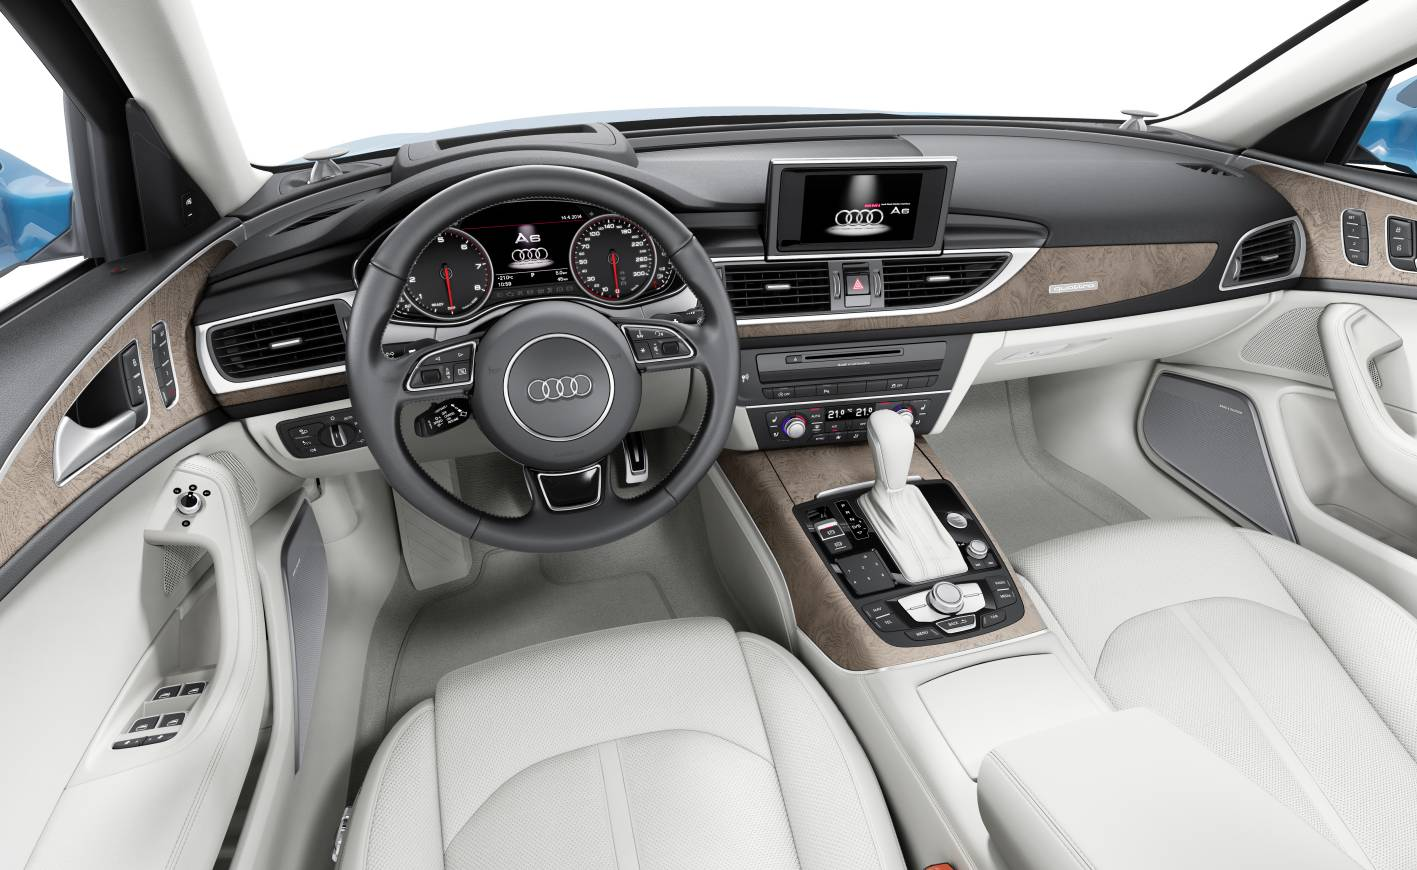 2015 Audi A6 Amp S6 Revealed On Sale In Australia In March